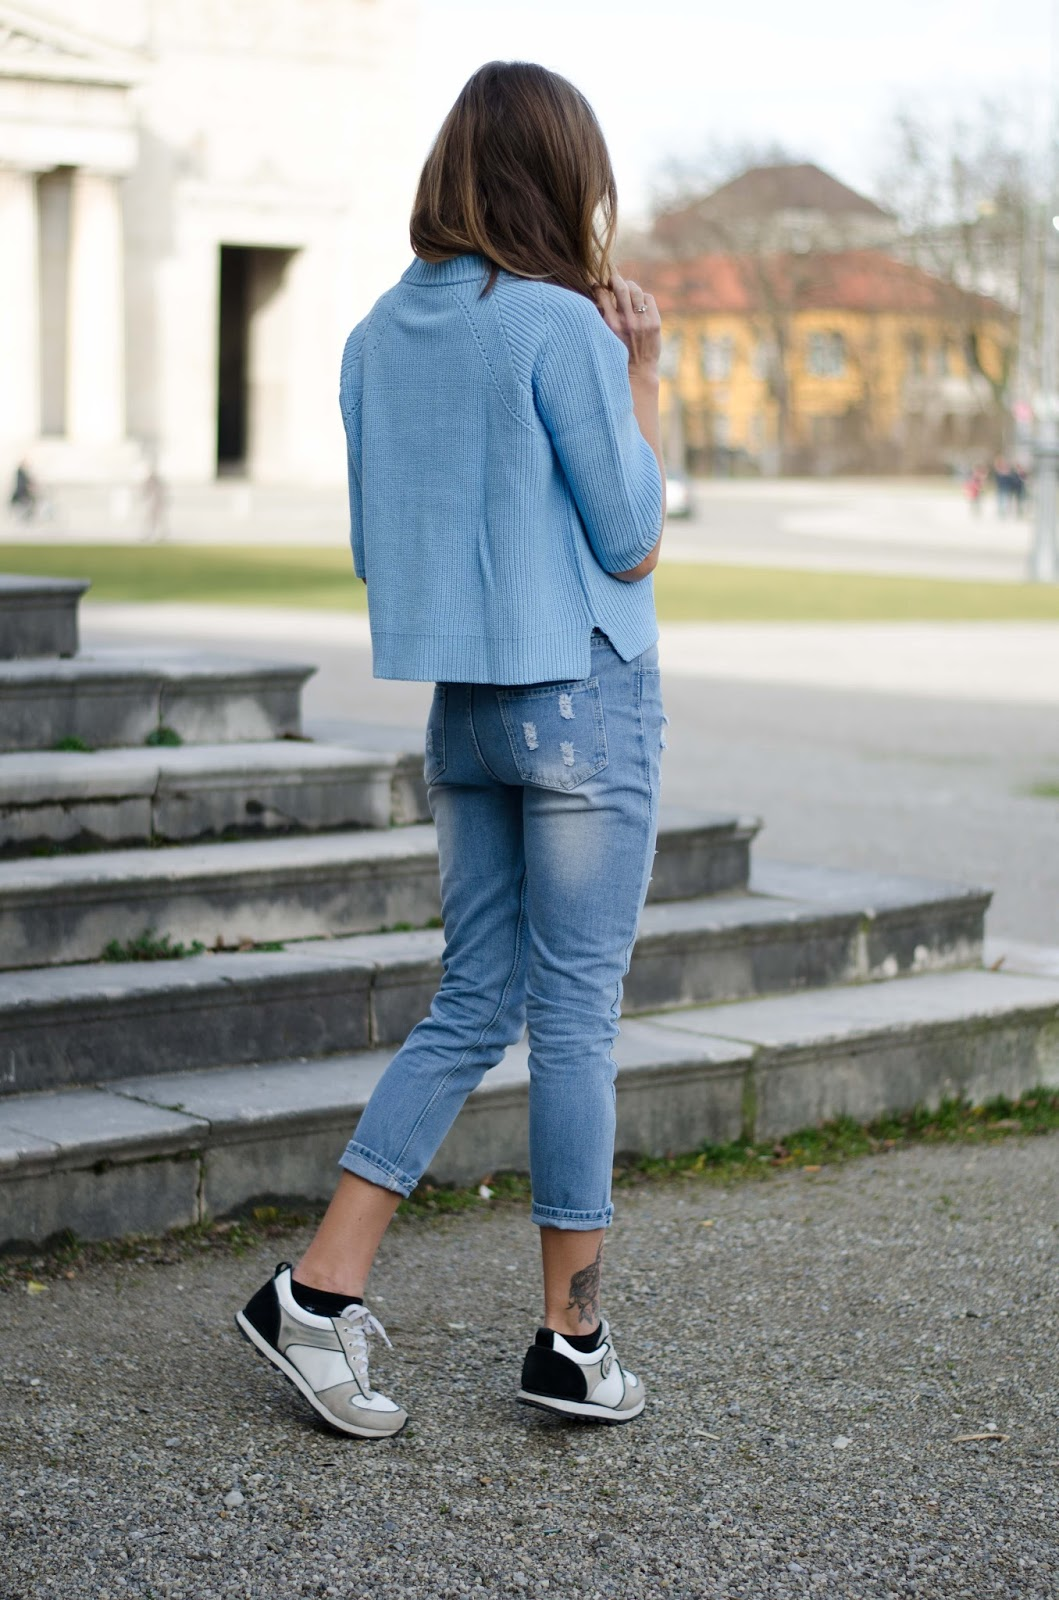 kristjaana mere knitted blue cropped top boyfriend jeans sneakers casual spring outfit